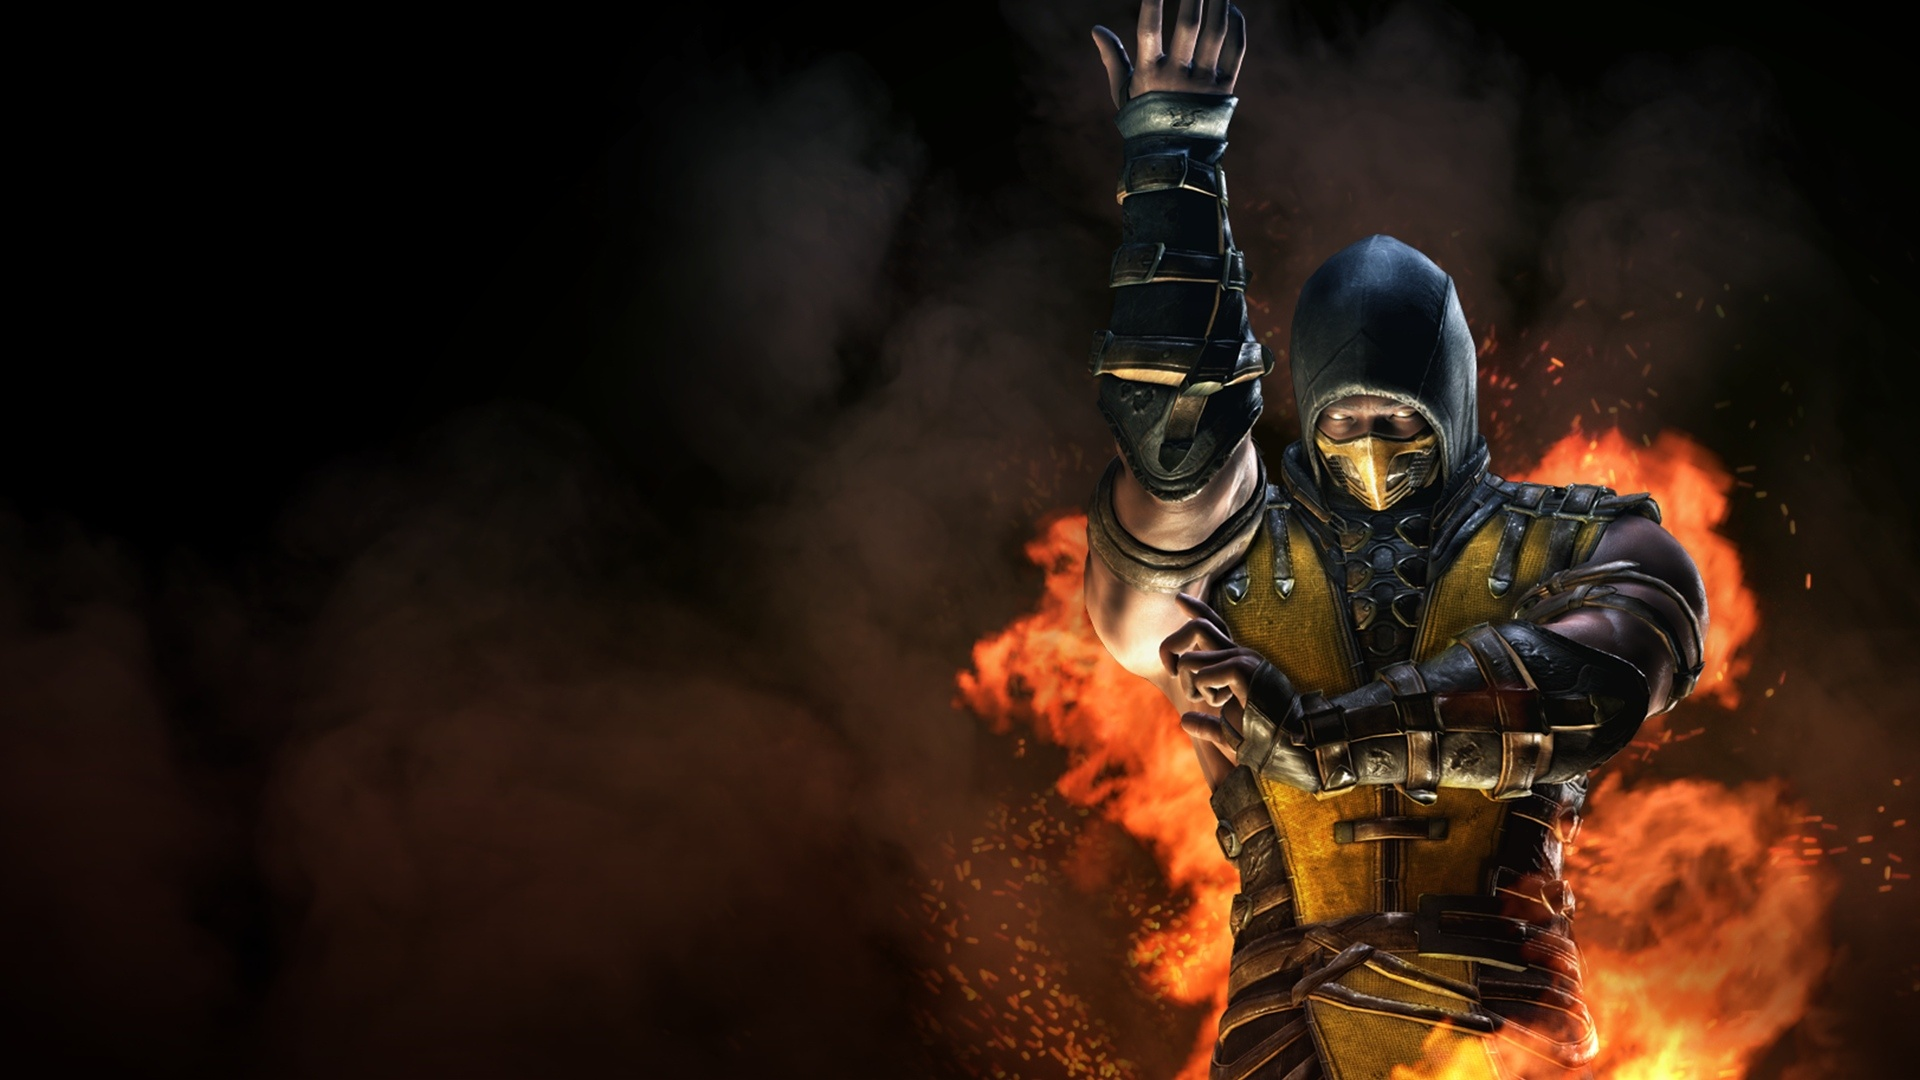 Mortal Kombat X Inferno Scorpion Wallpapers In Jpg Format For Free